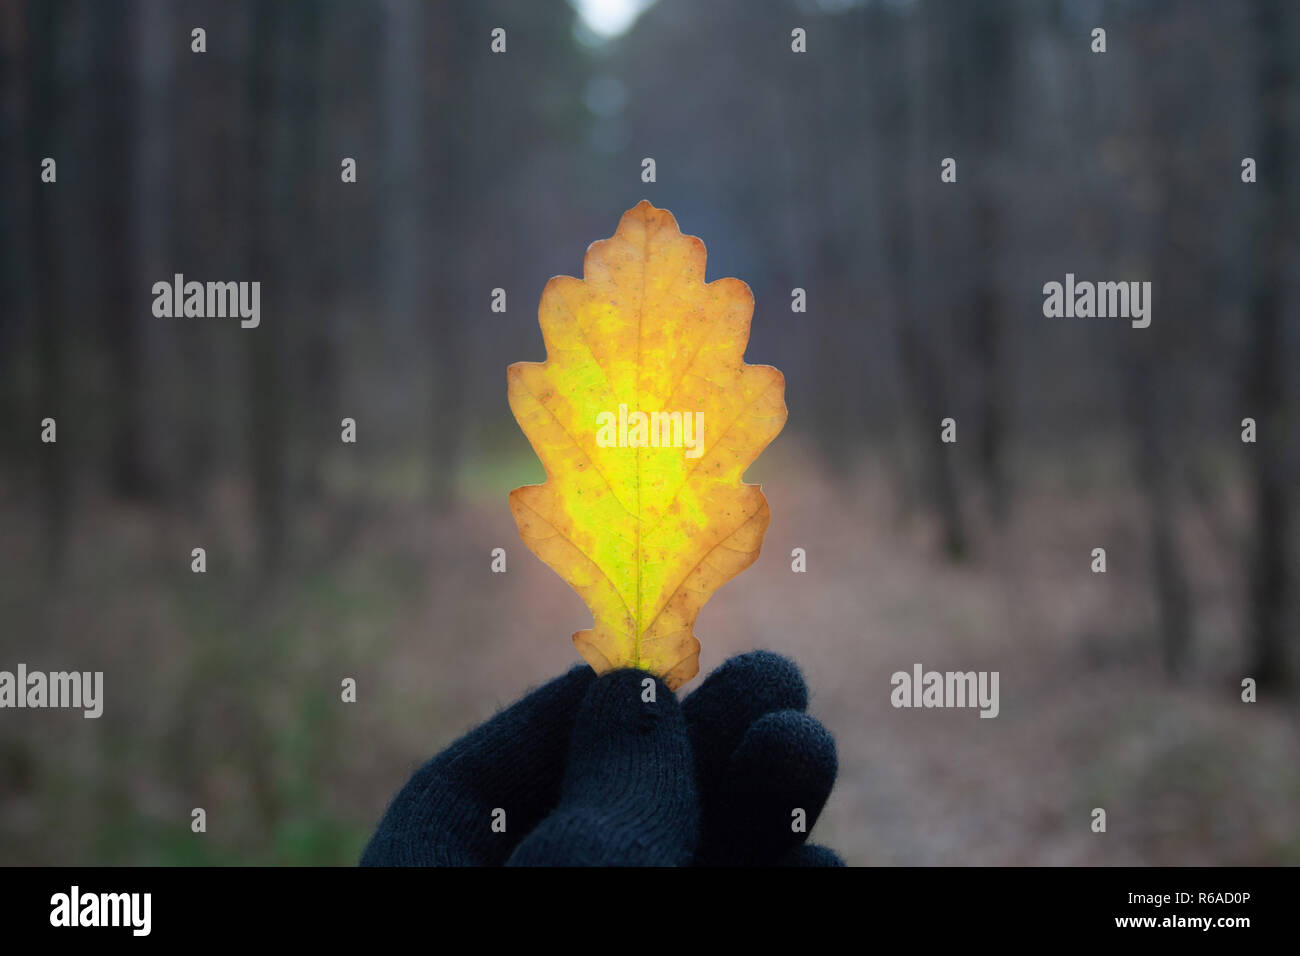 Oak leaf in man's hand in gloomily forest at november - Stock Image